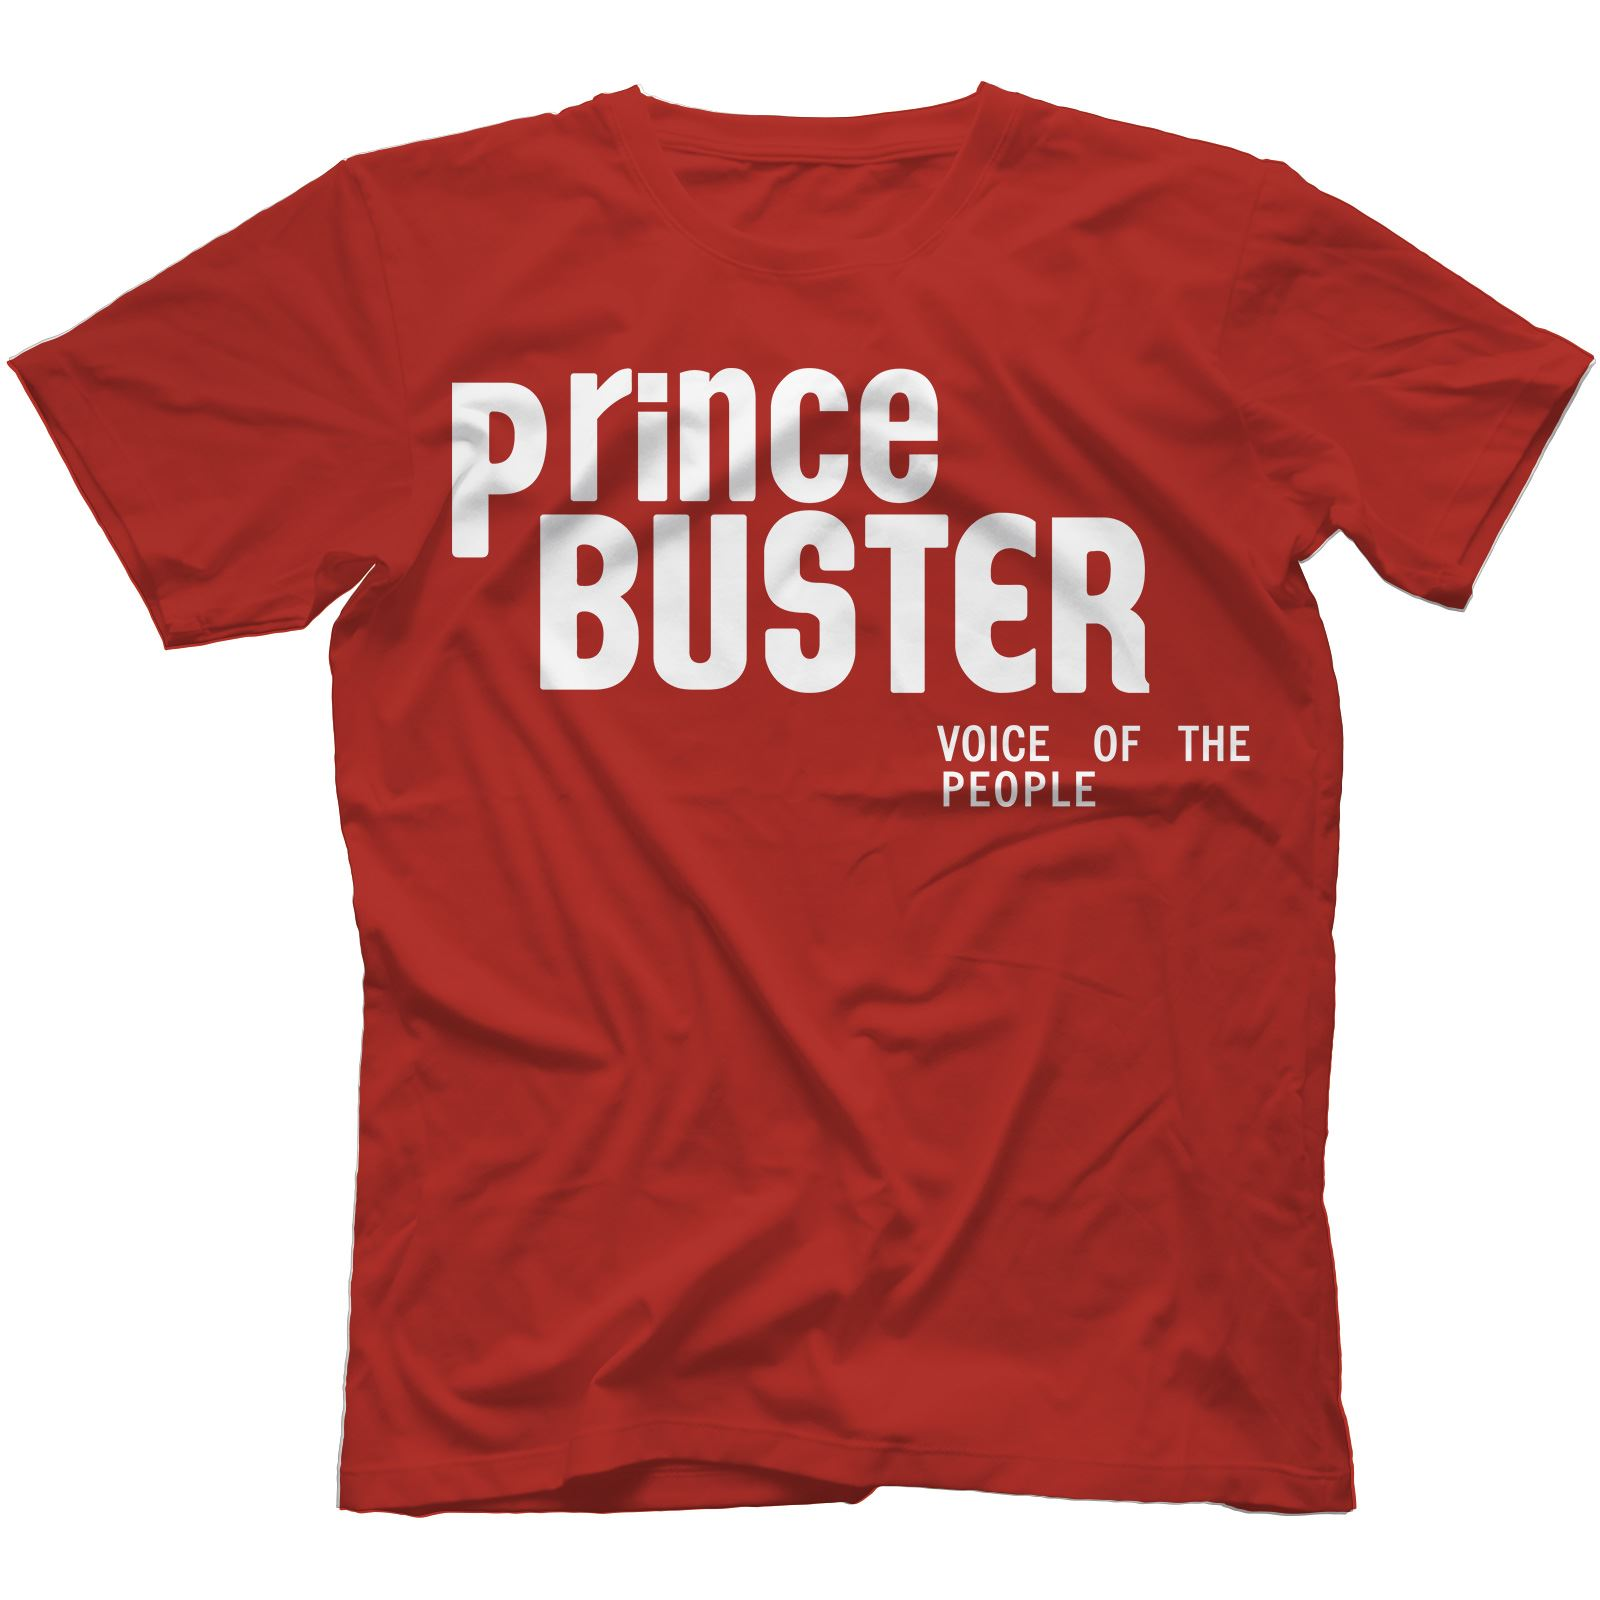 Prince Buster T-Shirt 100/% Cotton Ska Rocksteady Oh Carolina Whine And Grine